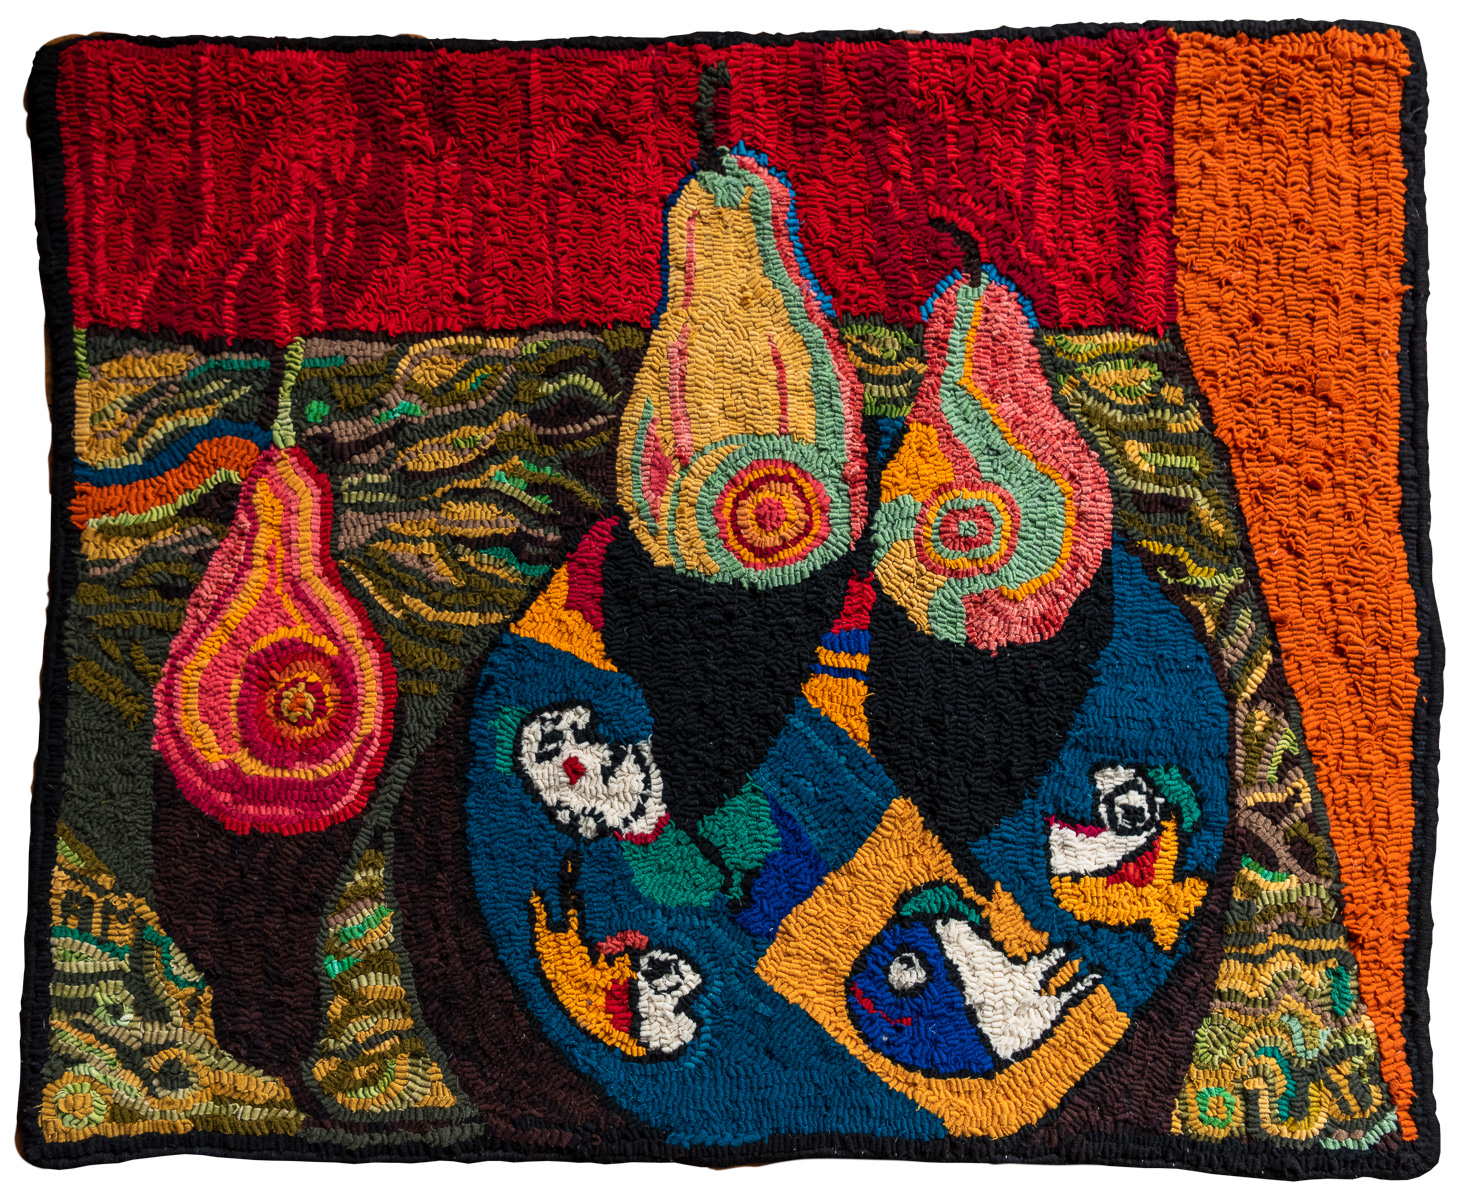 hooked rug from Hooked on Spring exhibit